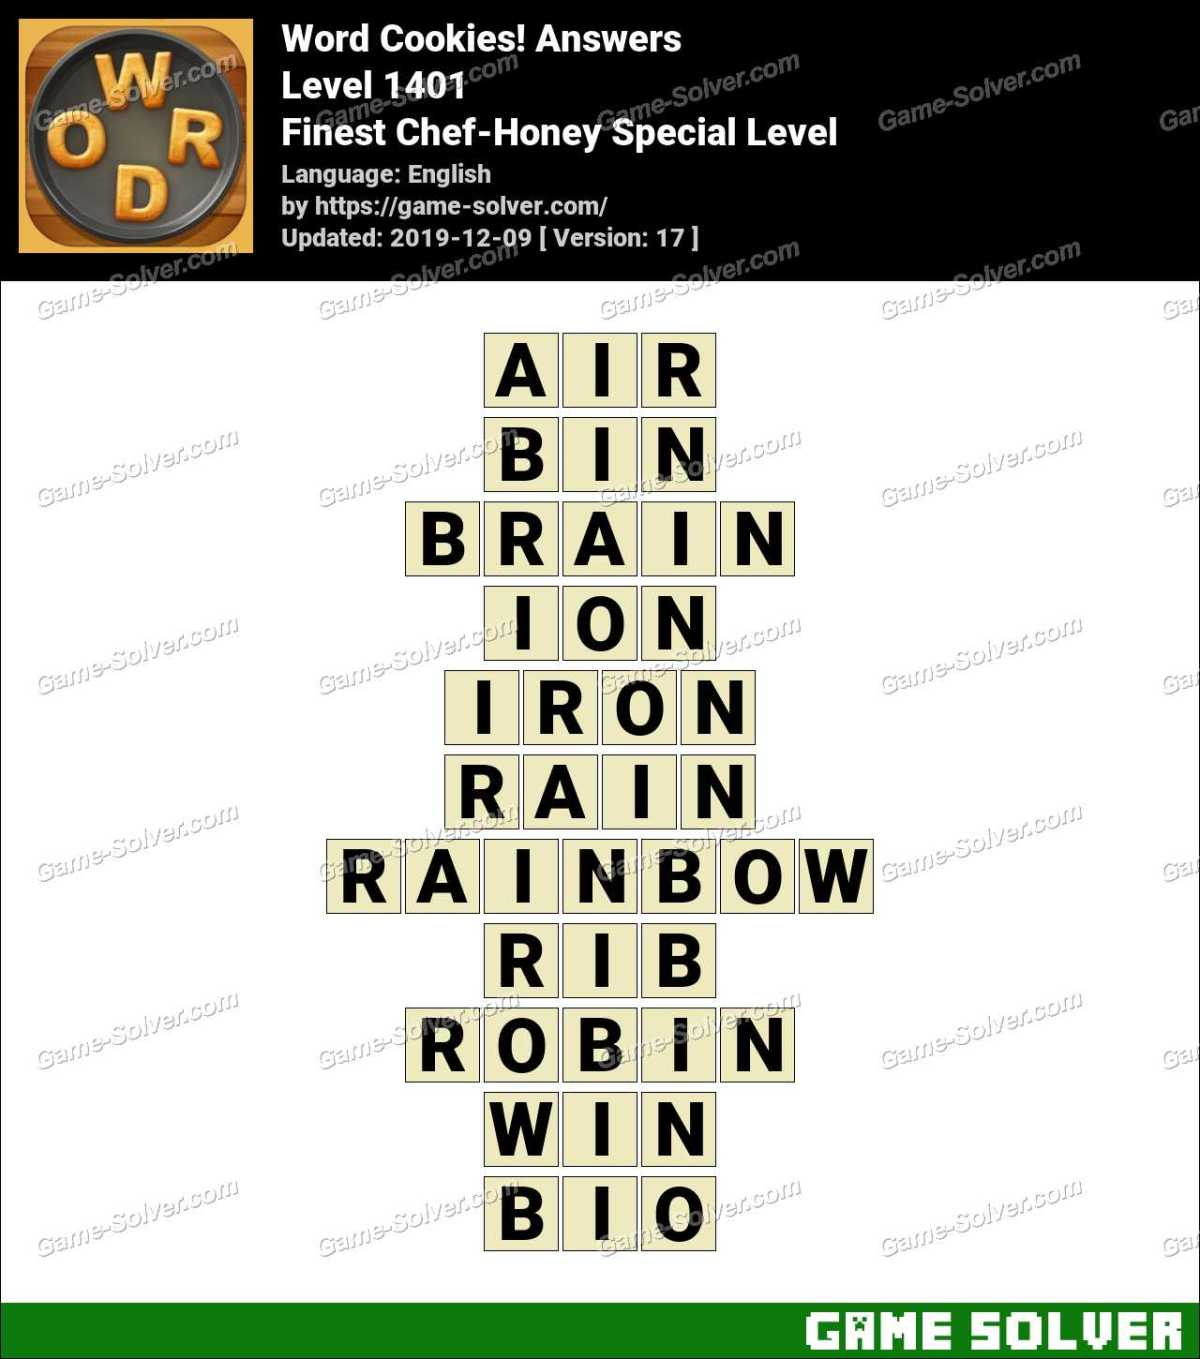 Word Cookies Finest Chef-Honey Special Level Answers